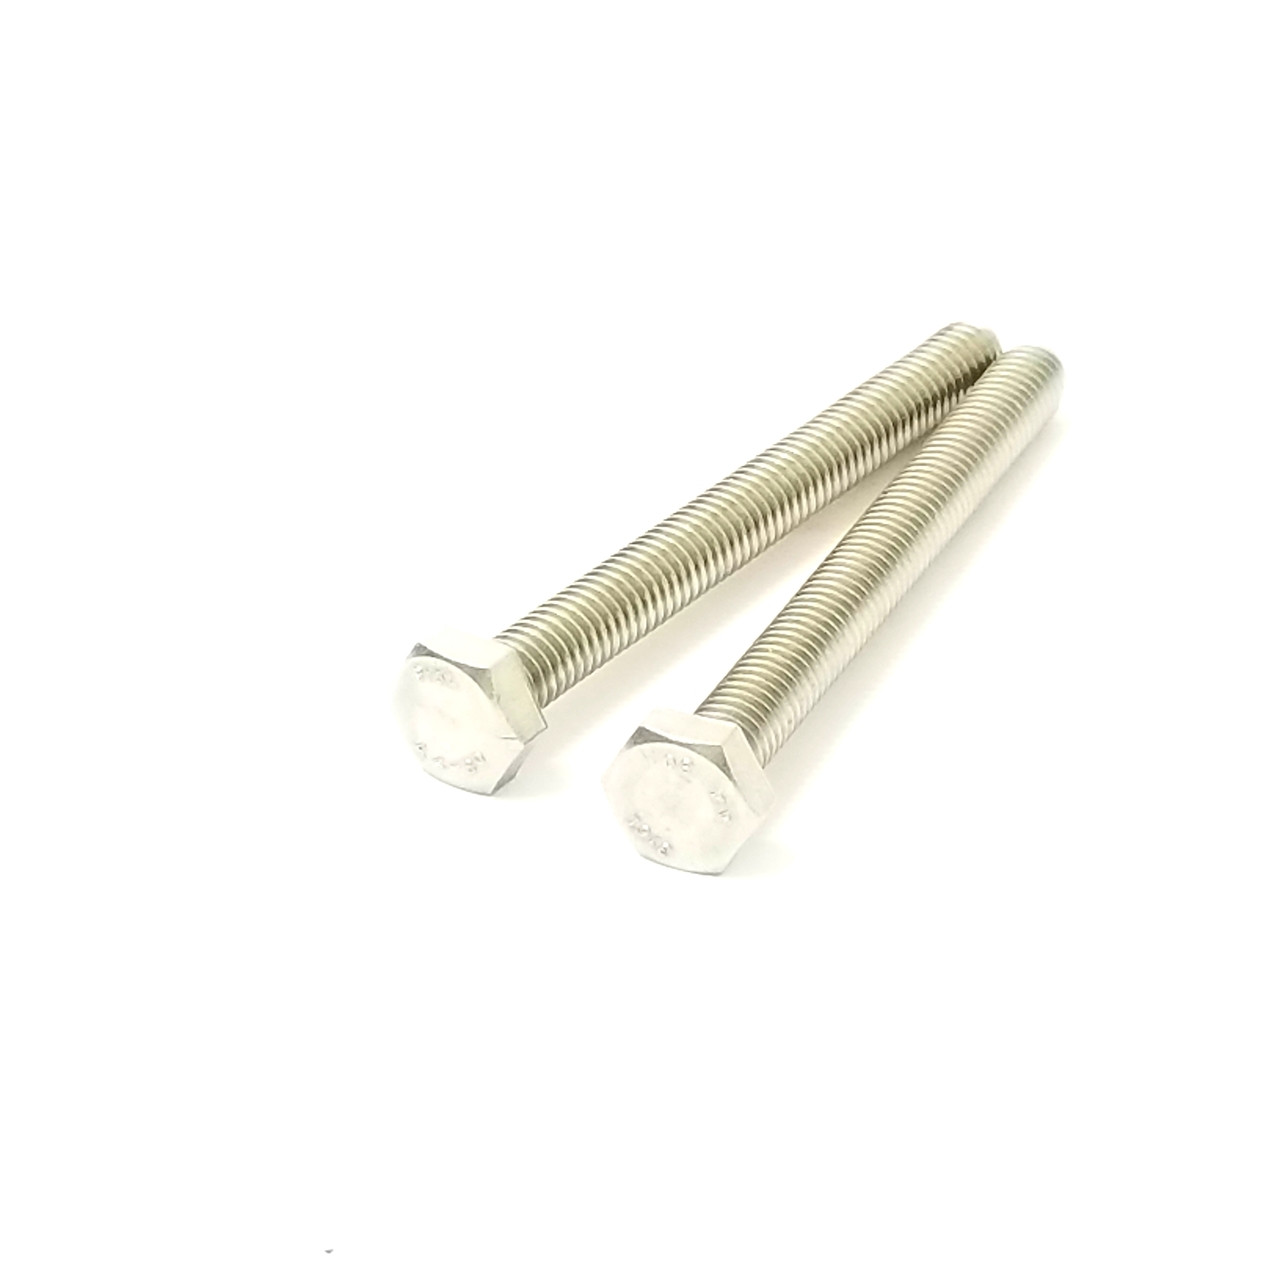 HHB5316 Hex head bolt M6x30 316 Stainless